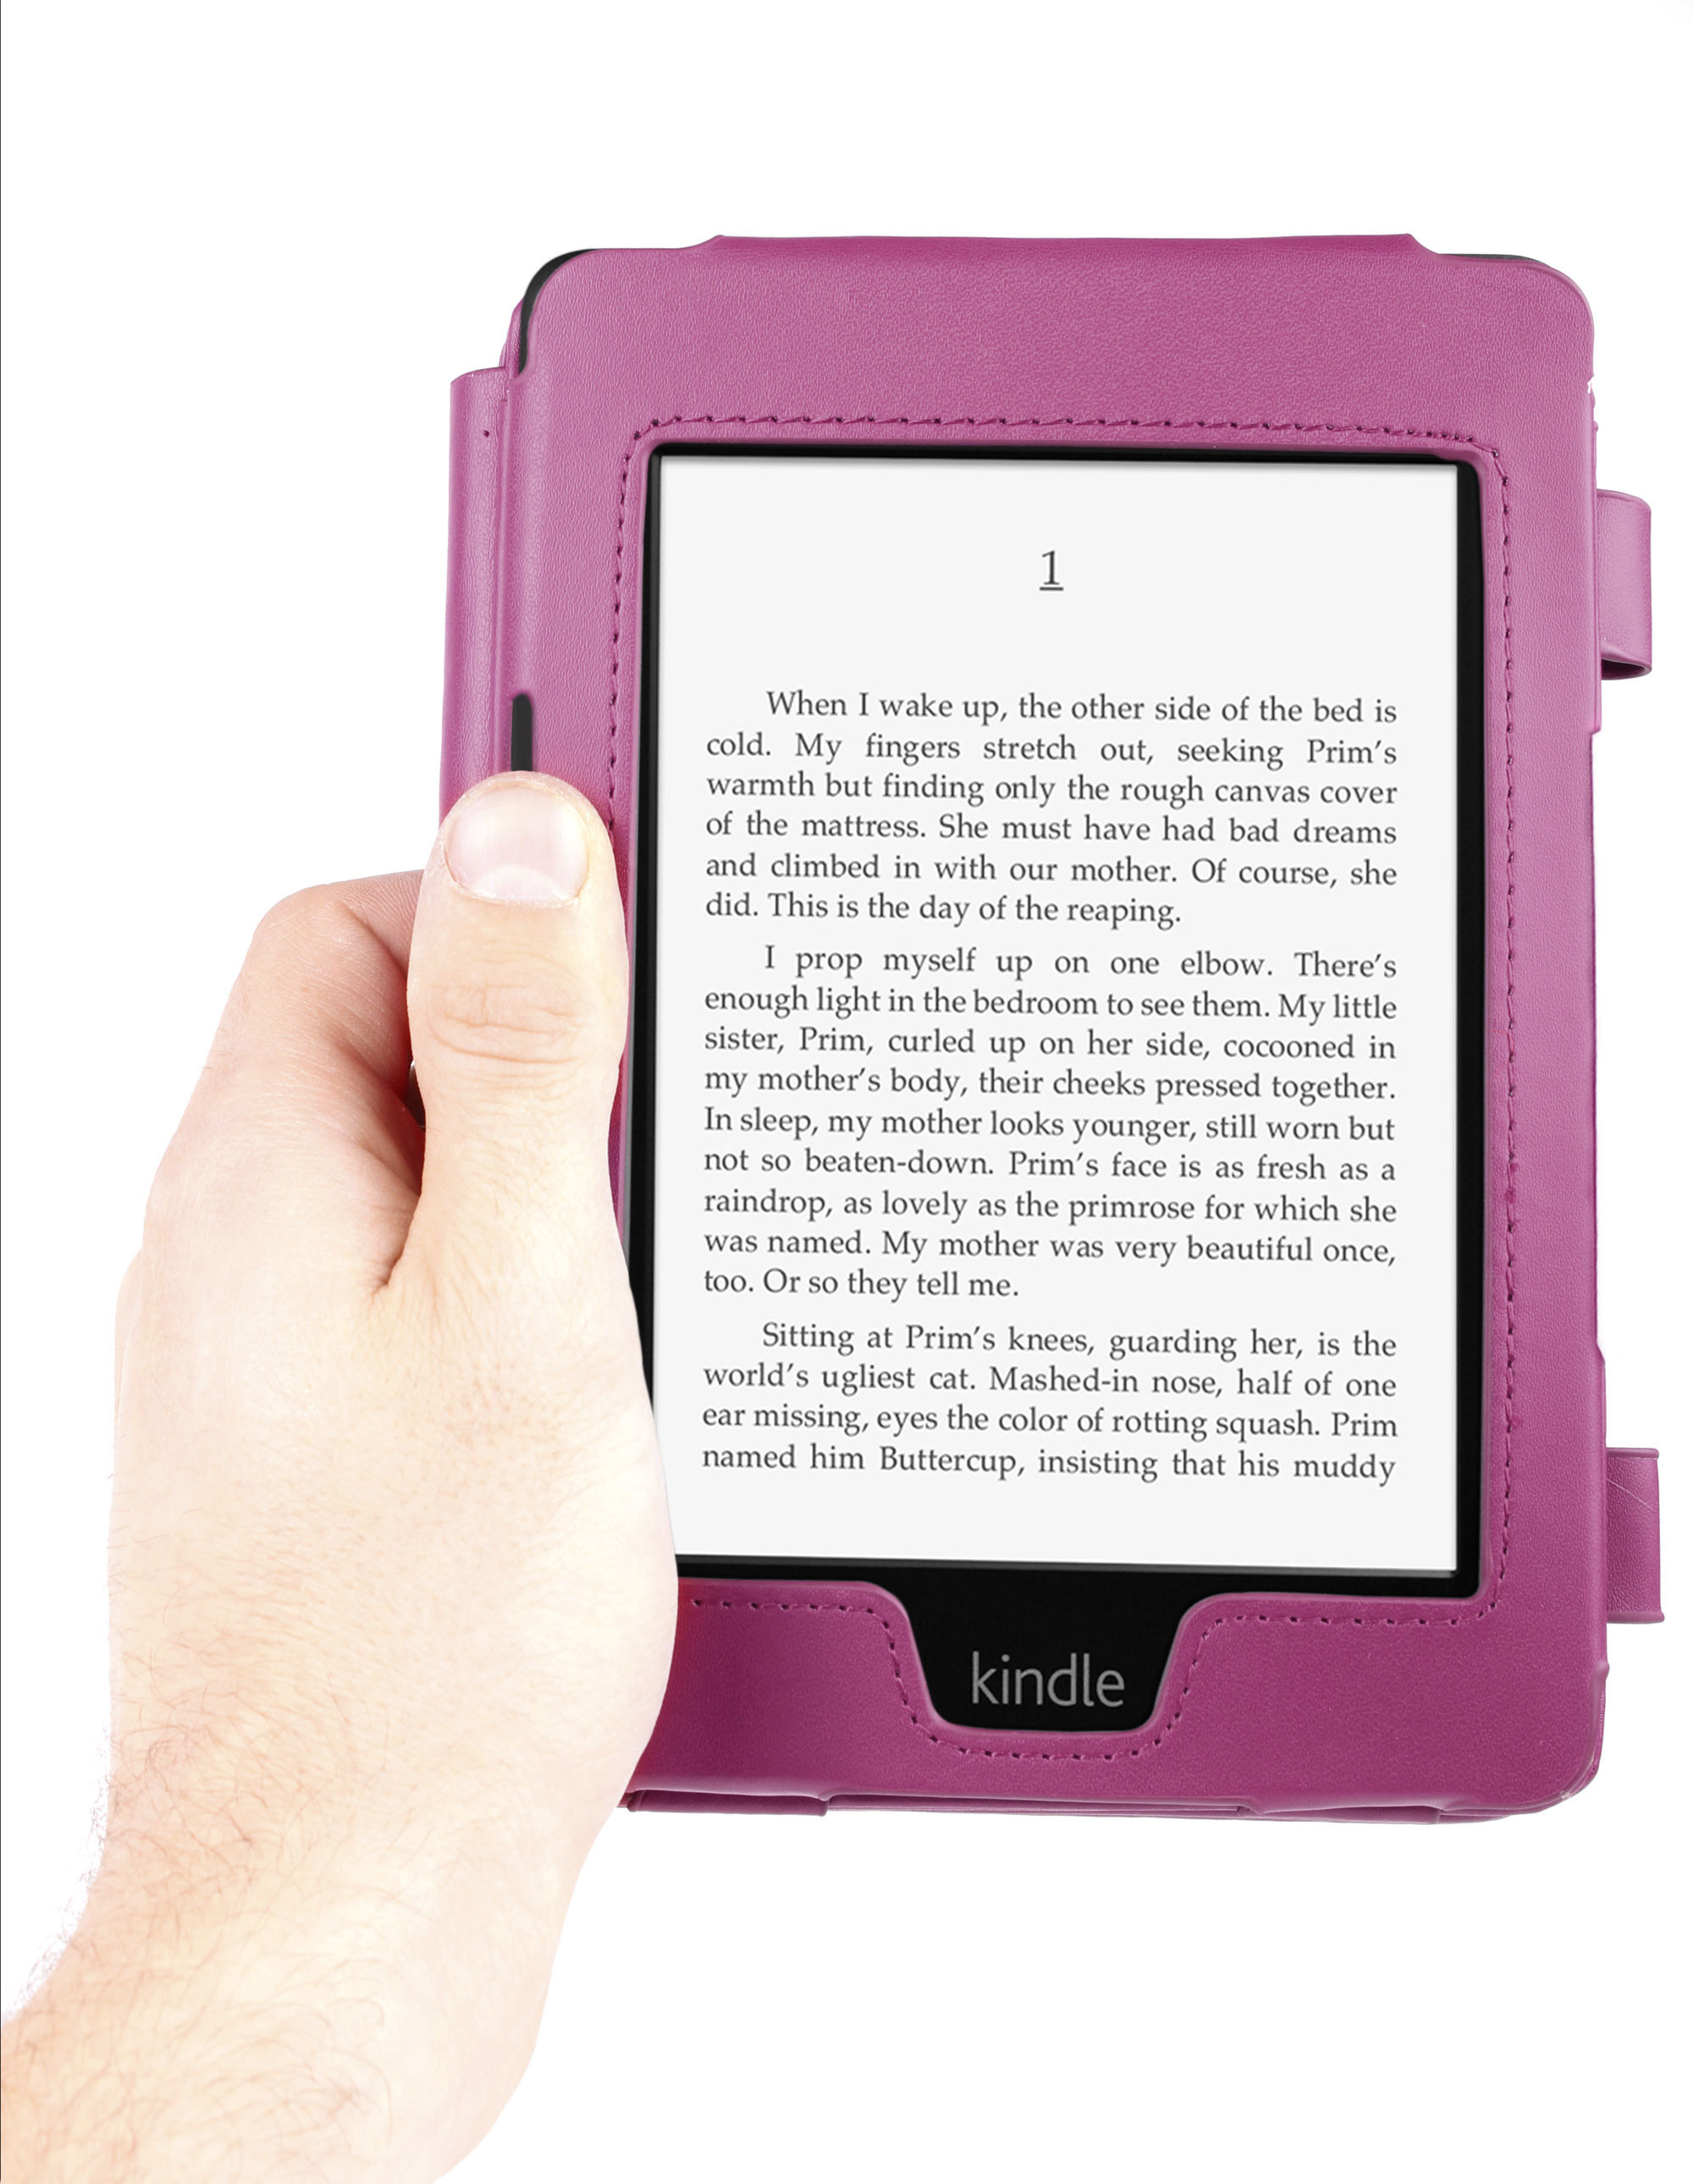 Custom Fit Amazon Kindle Paperwhite Case In Purple Leather With Book Open Style Preview